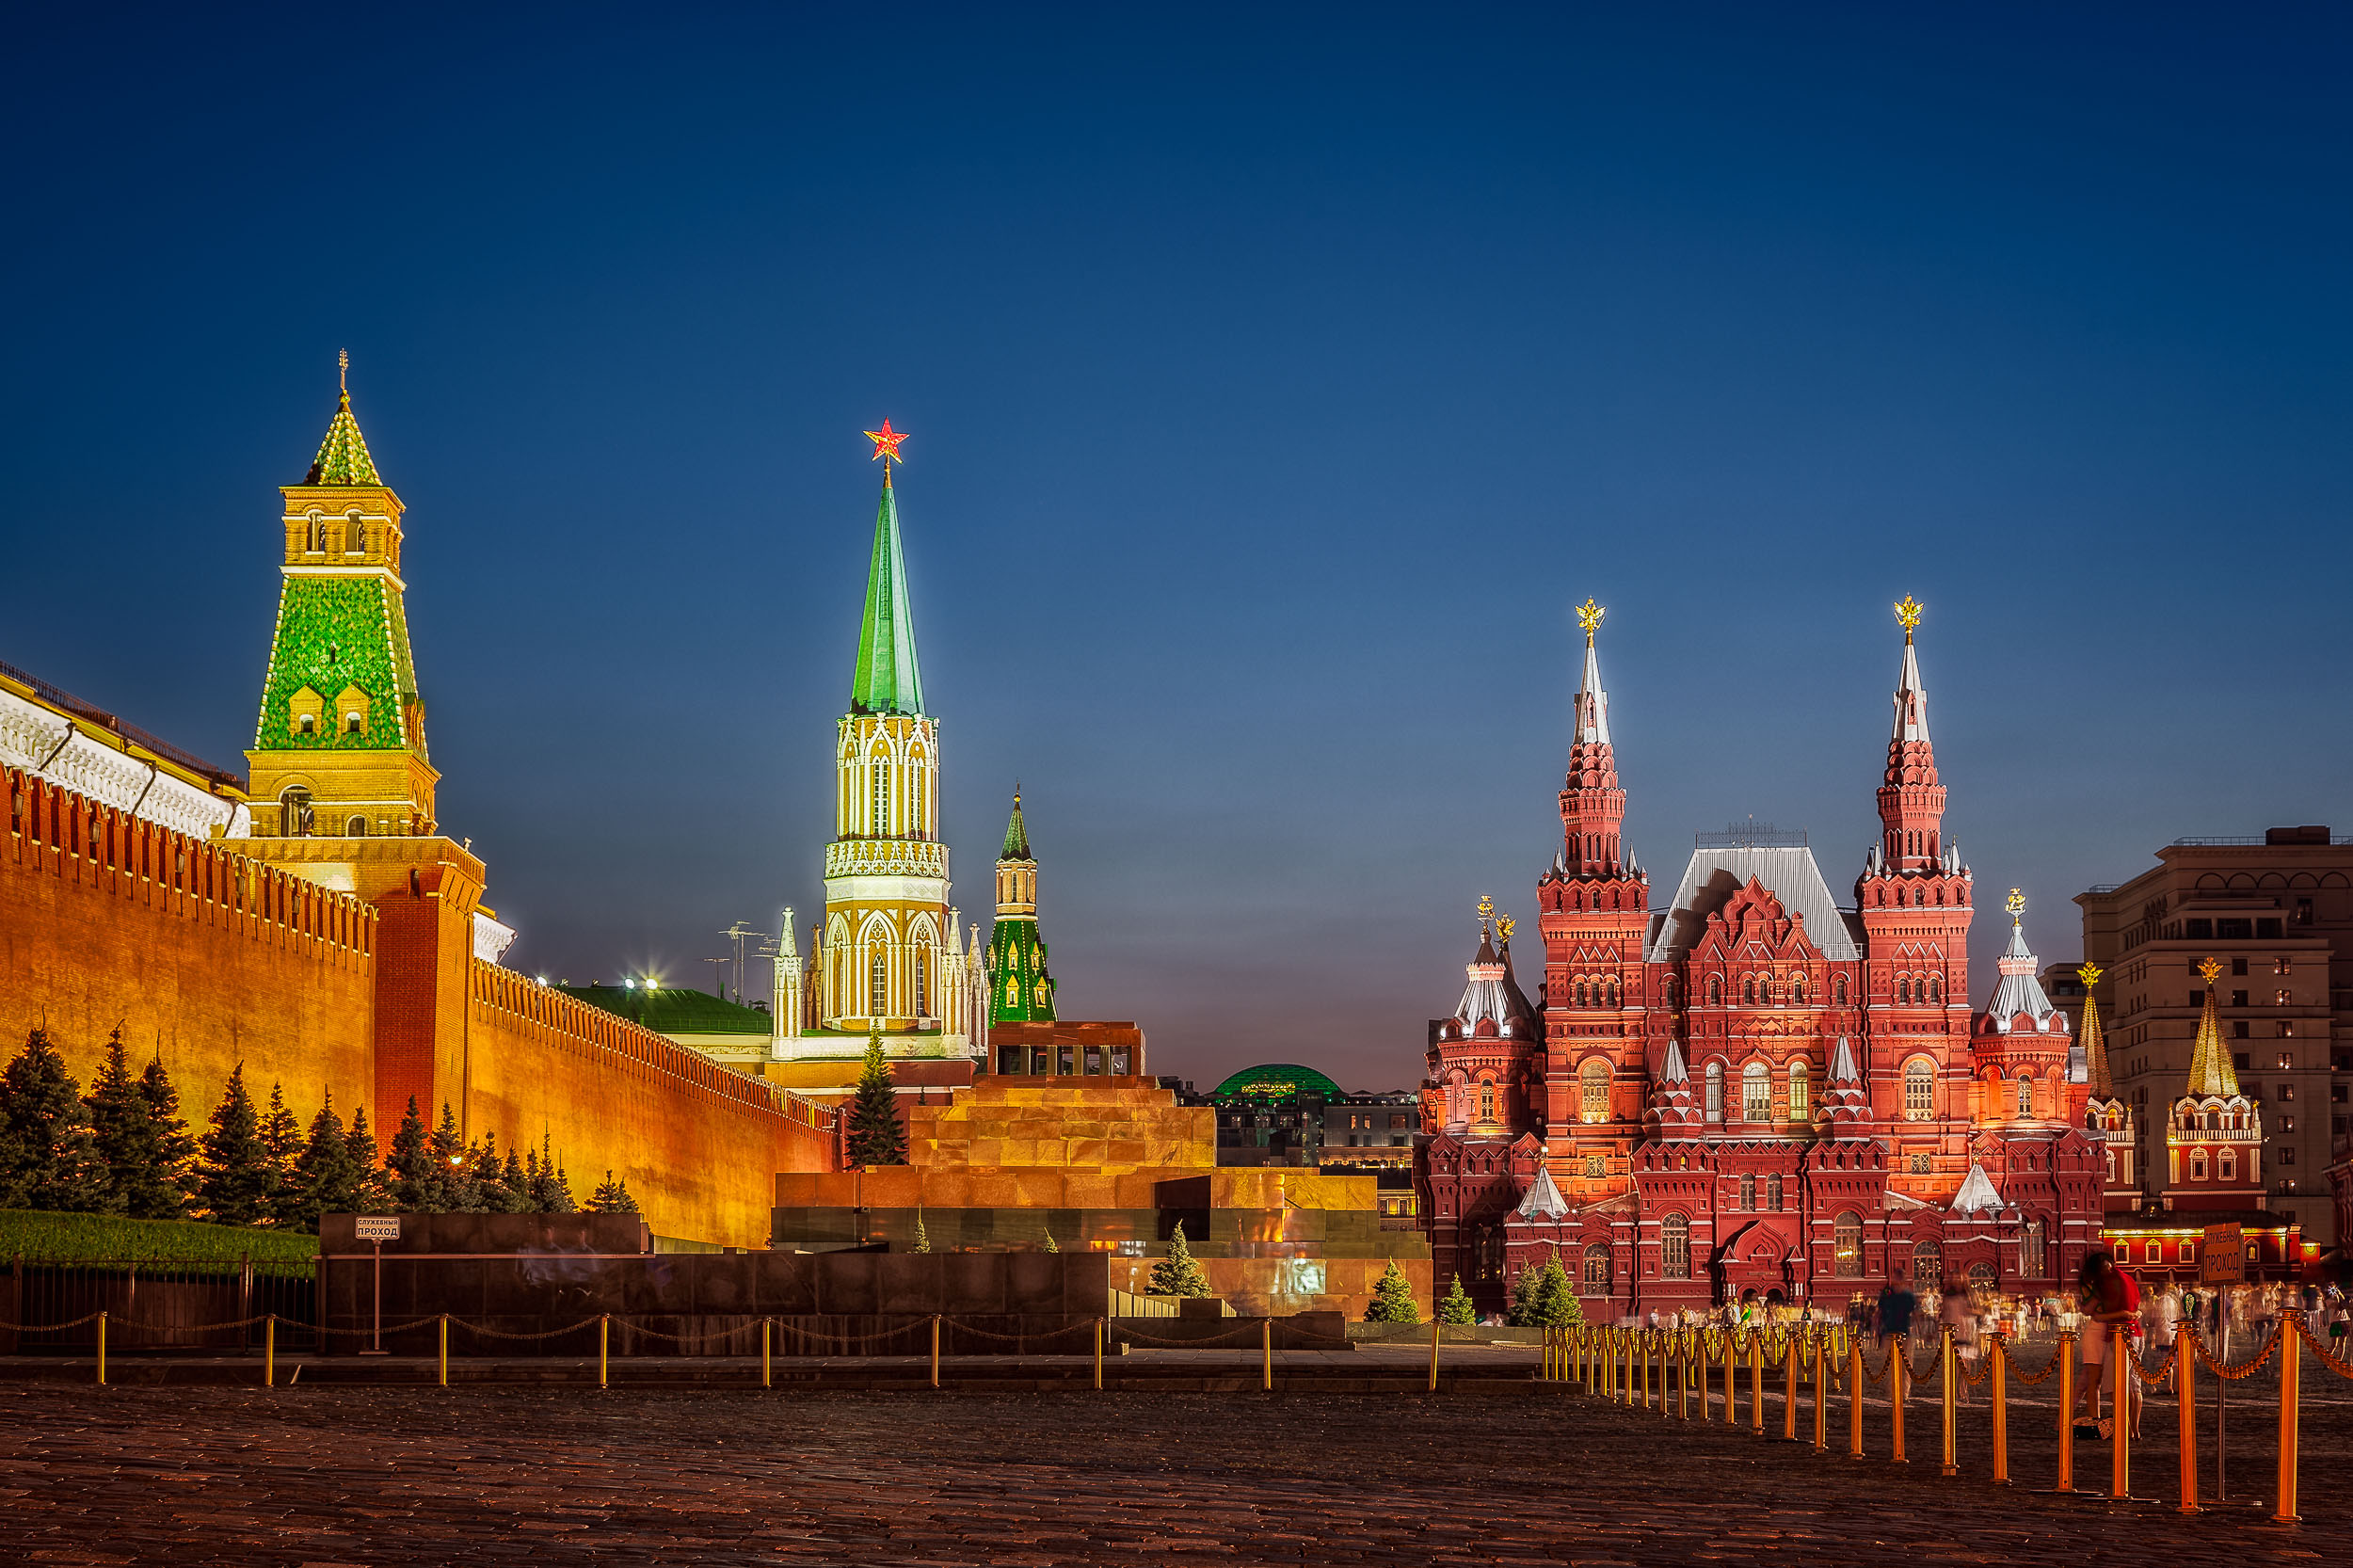 The magnificent    Red Square    on a warm    summer's evening    in    Moscow, Russia   .